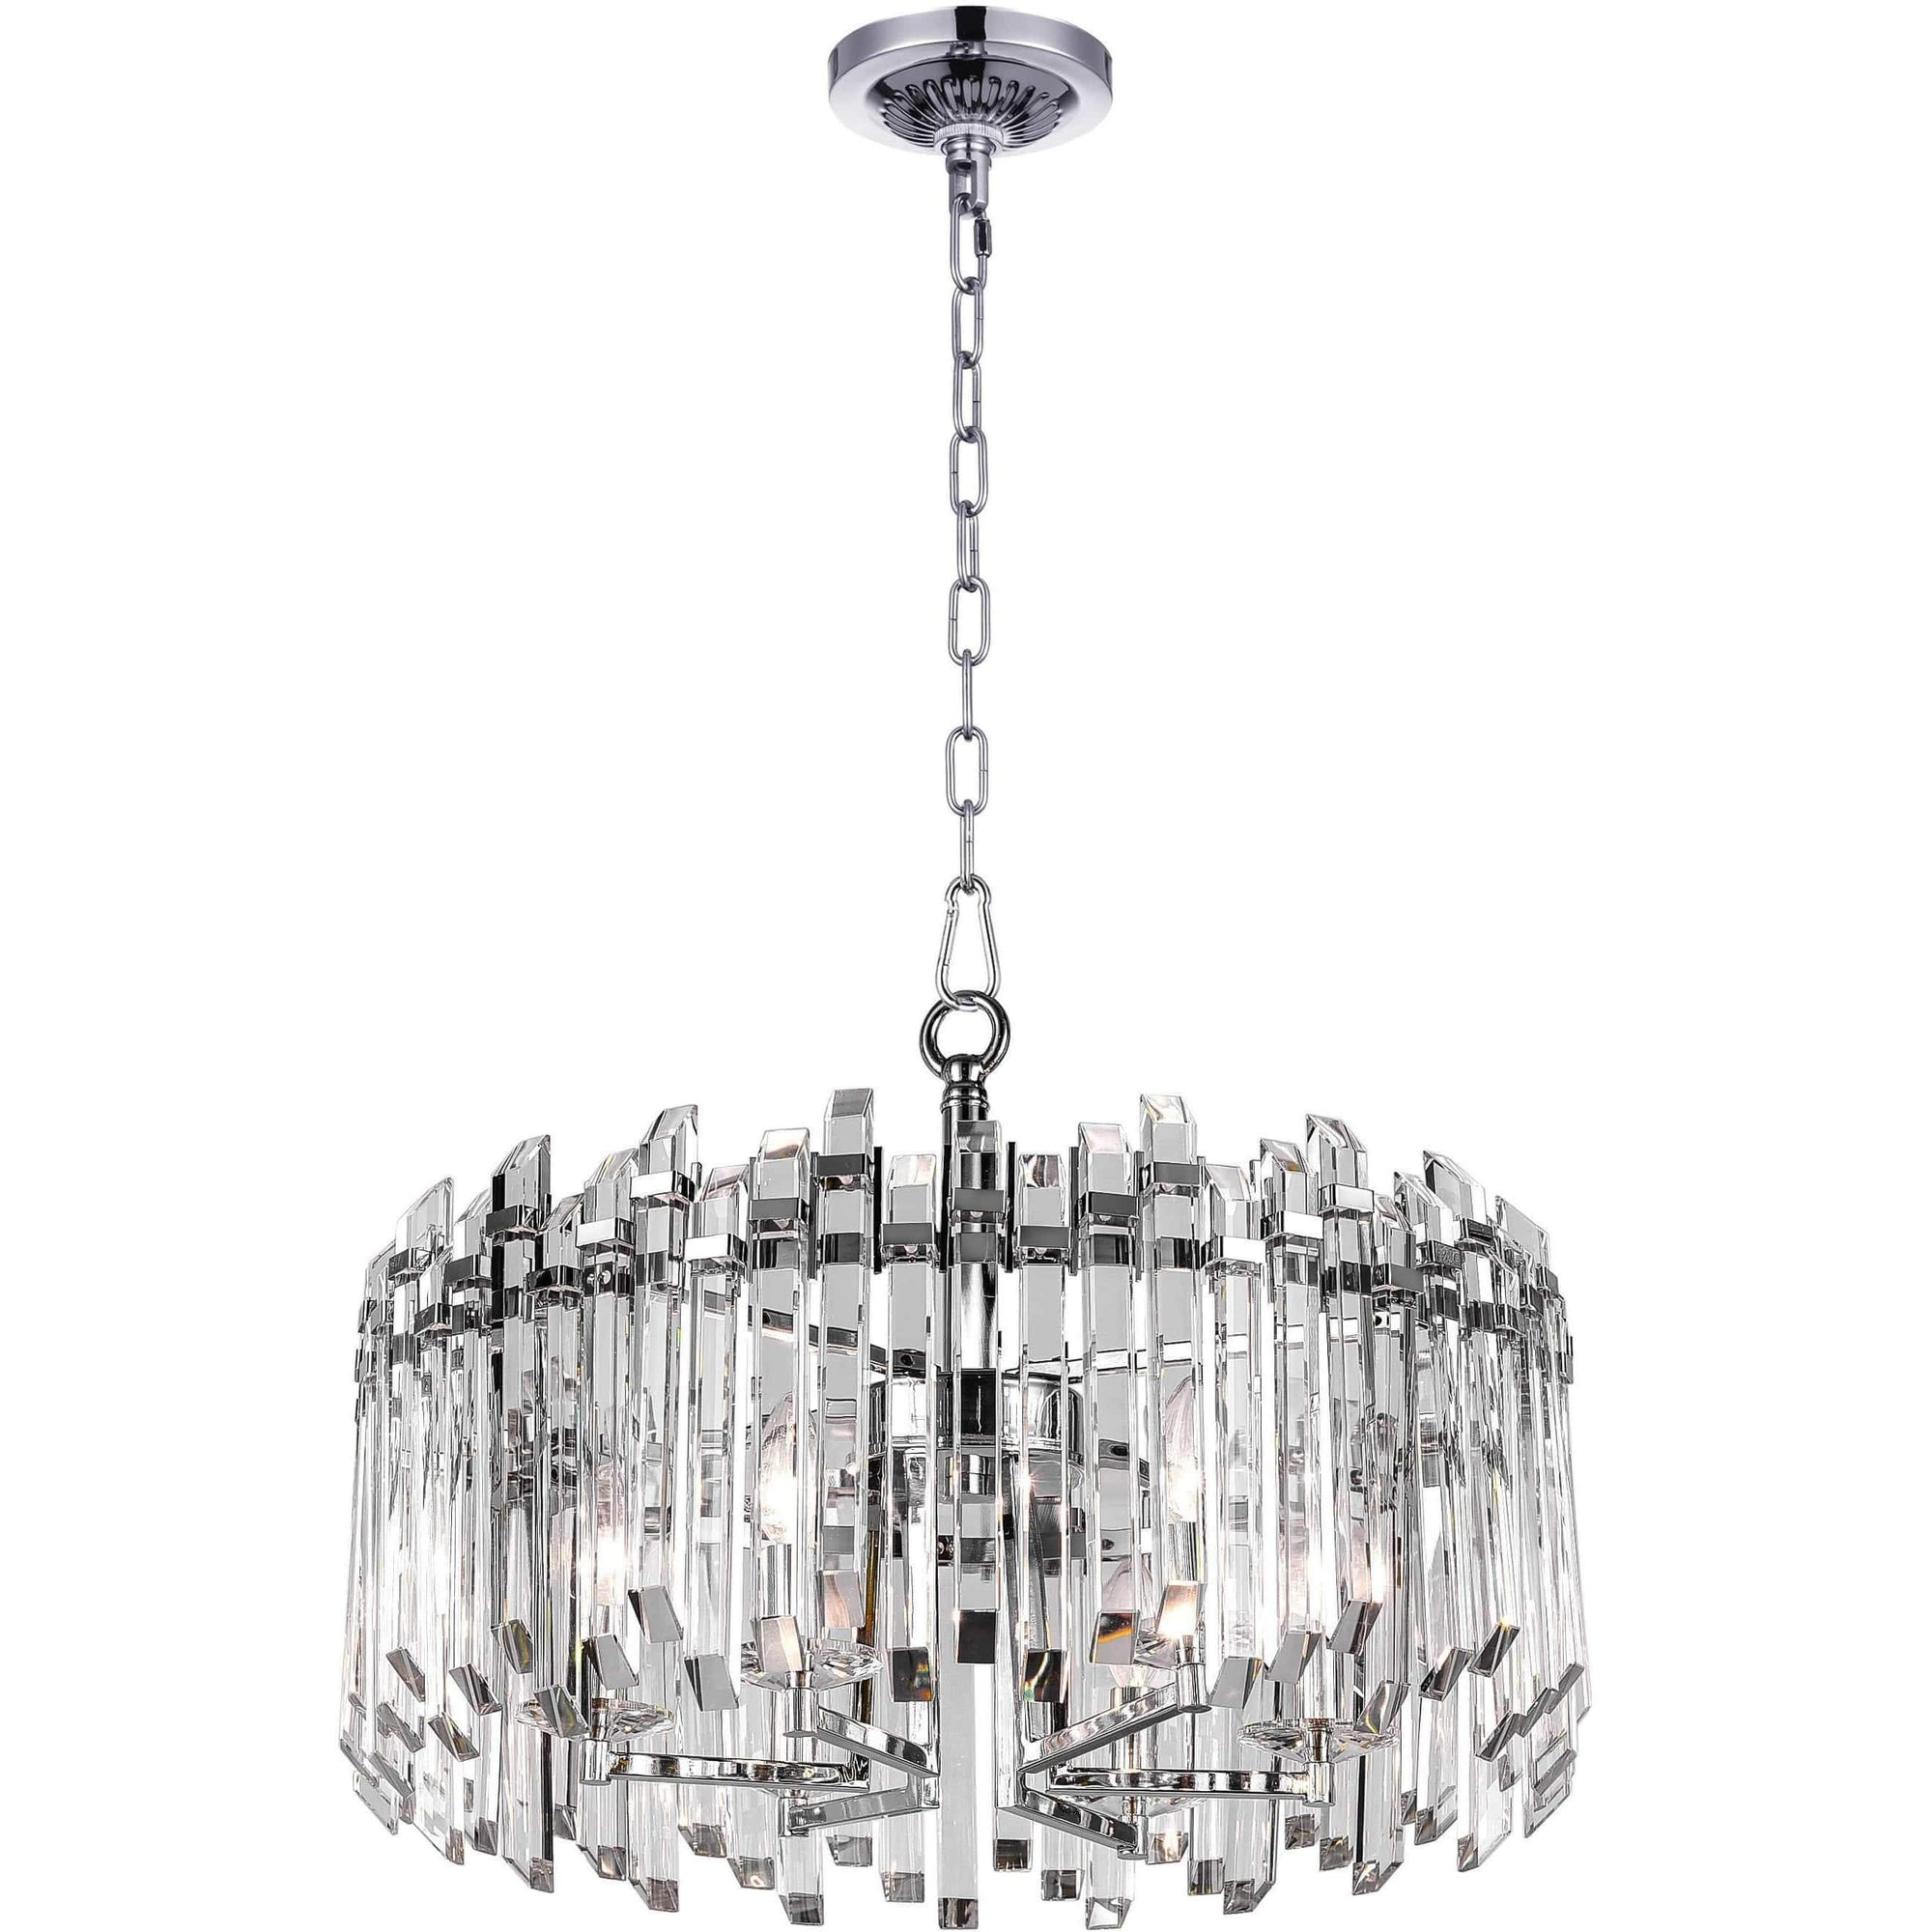 CWI Lighting Chandeliers Chrome / K9 Clear Henrietta 6 Light Chandelier with Chrome Finish by CWI Lighting 1065P24-6-601